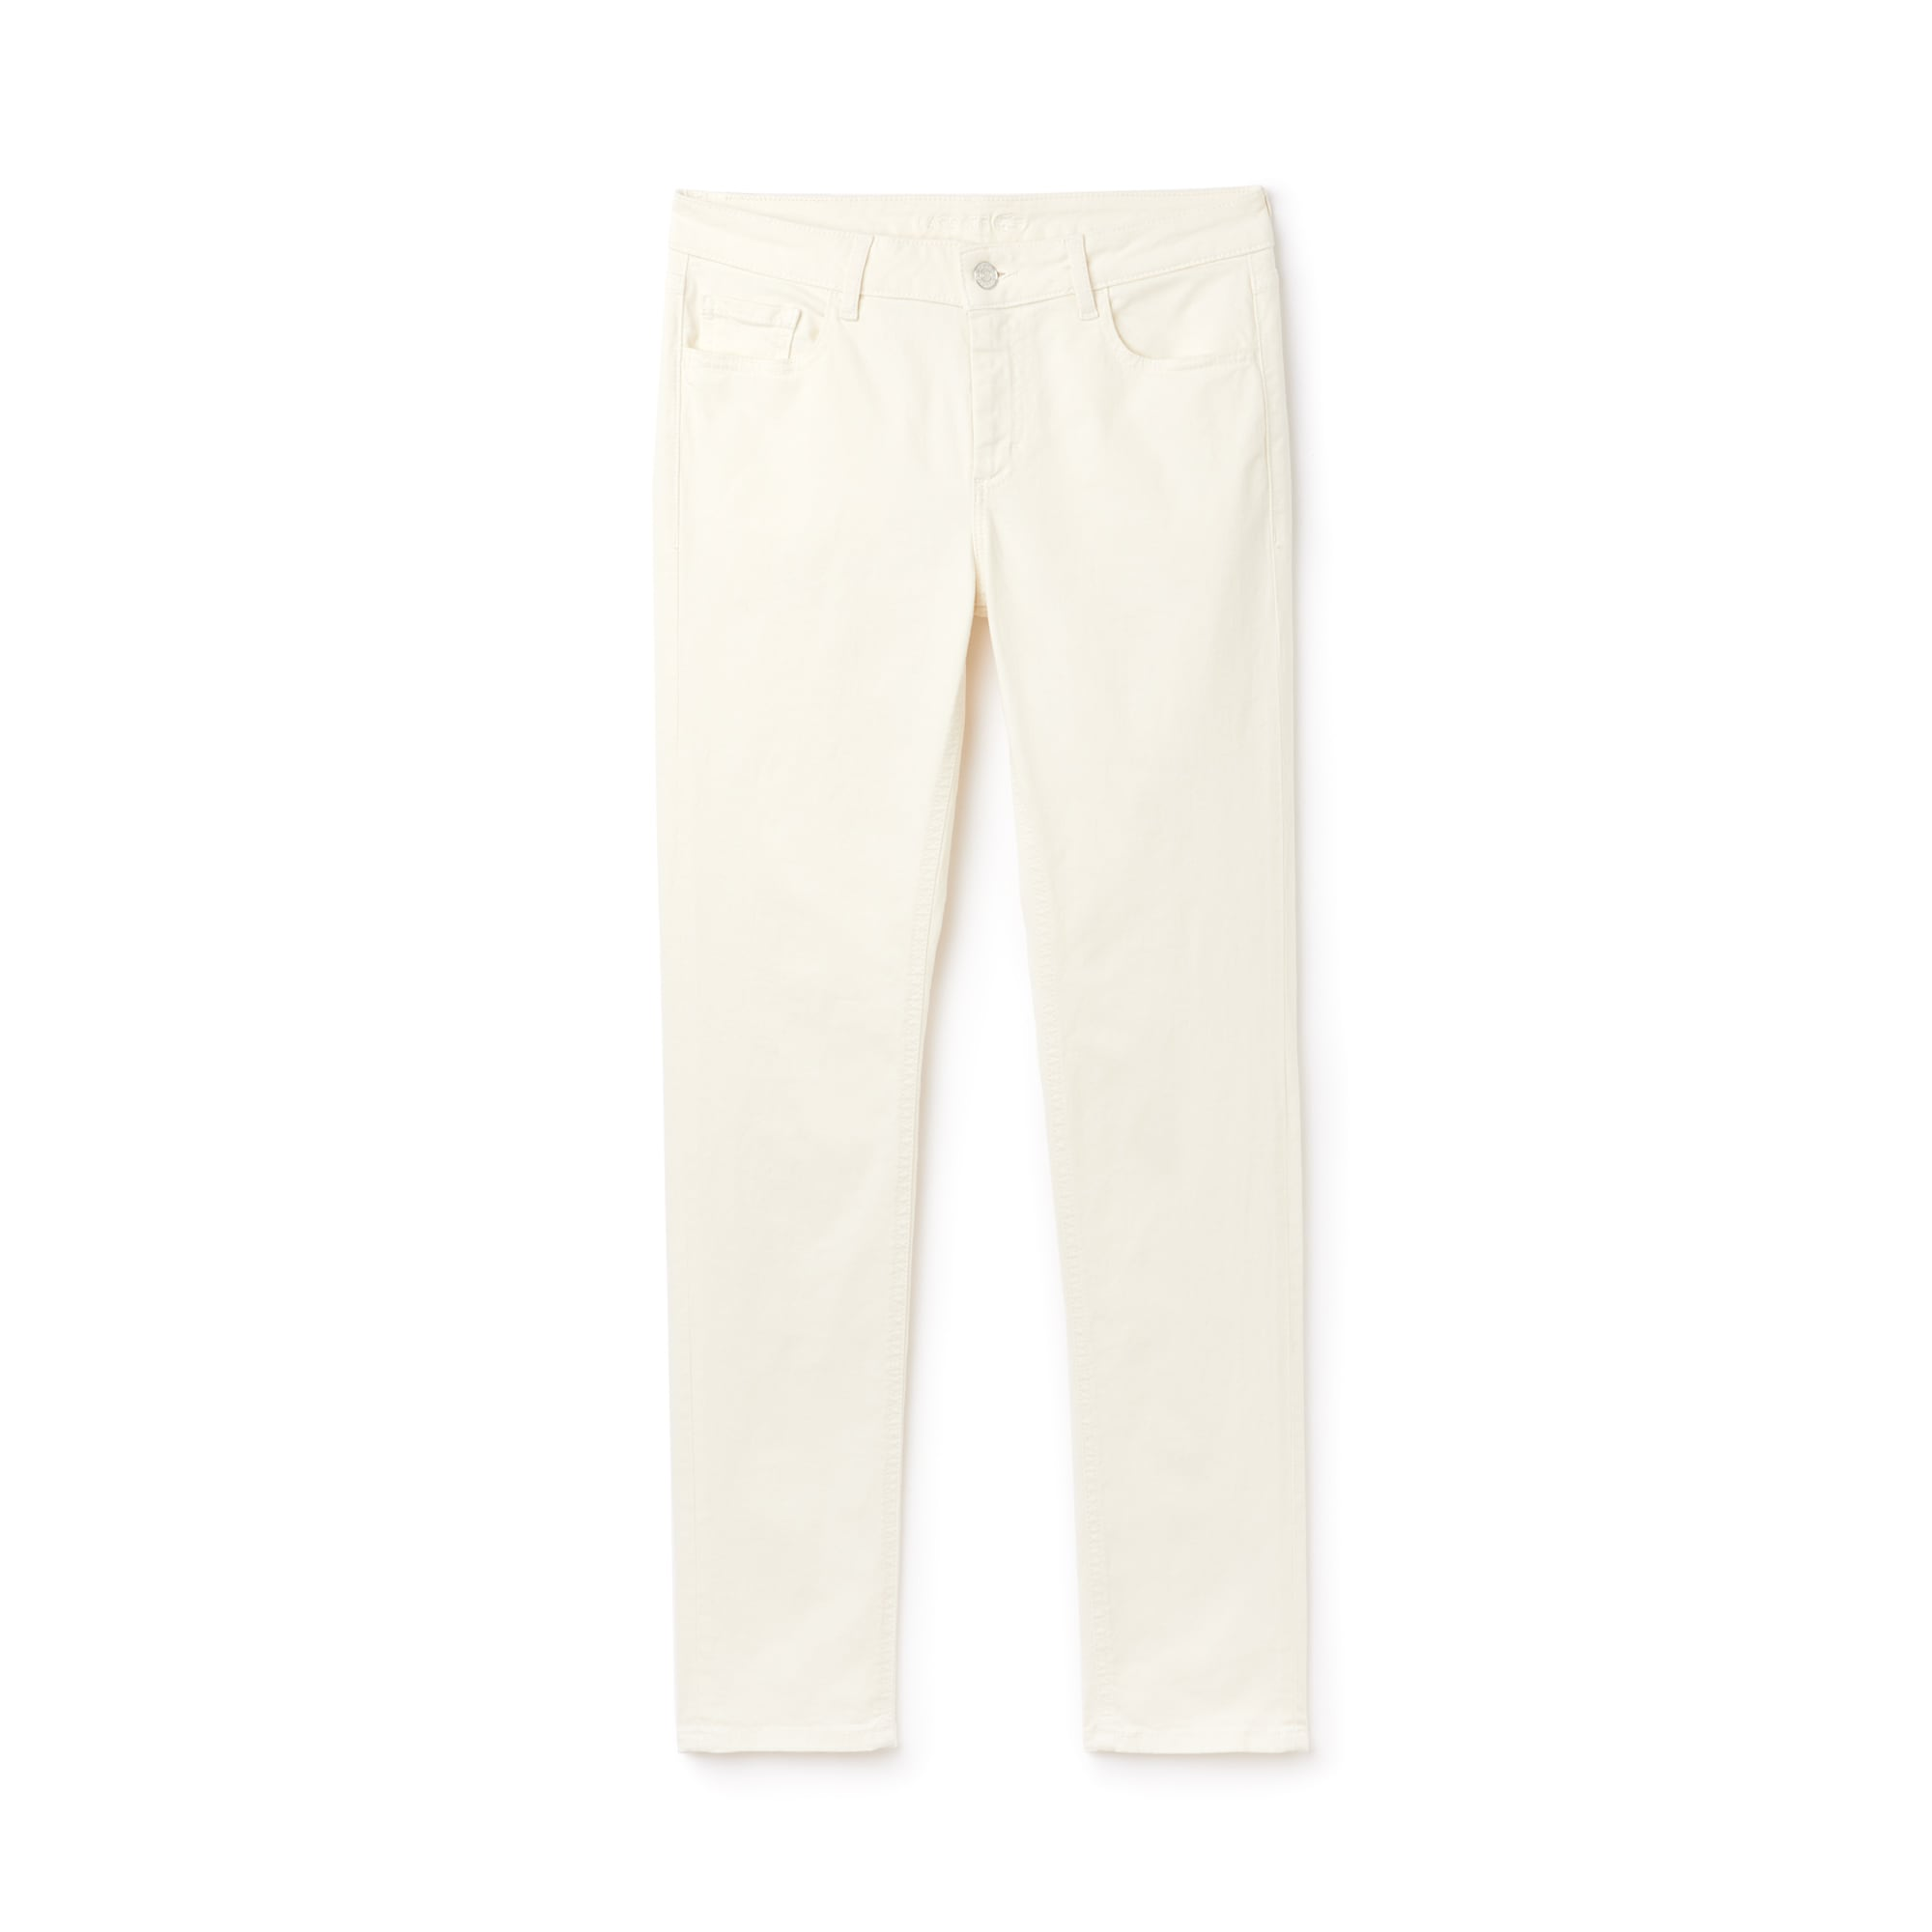 라코스테 Lacoste Womens Slim Fit Stretch Cotton Denim Jeans,white